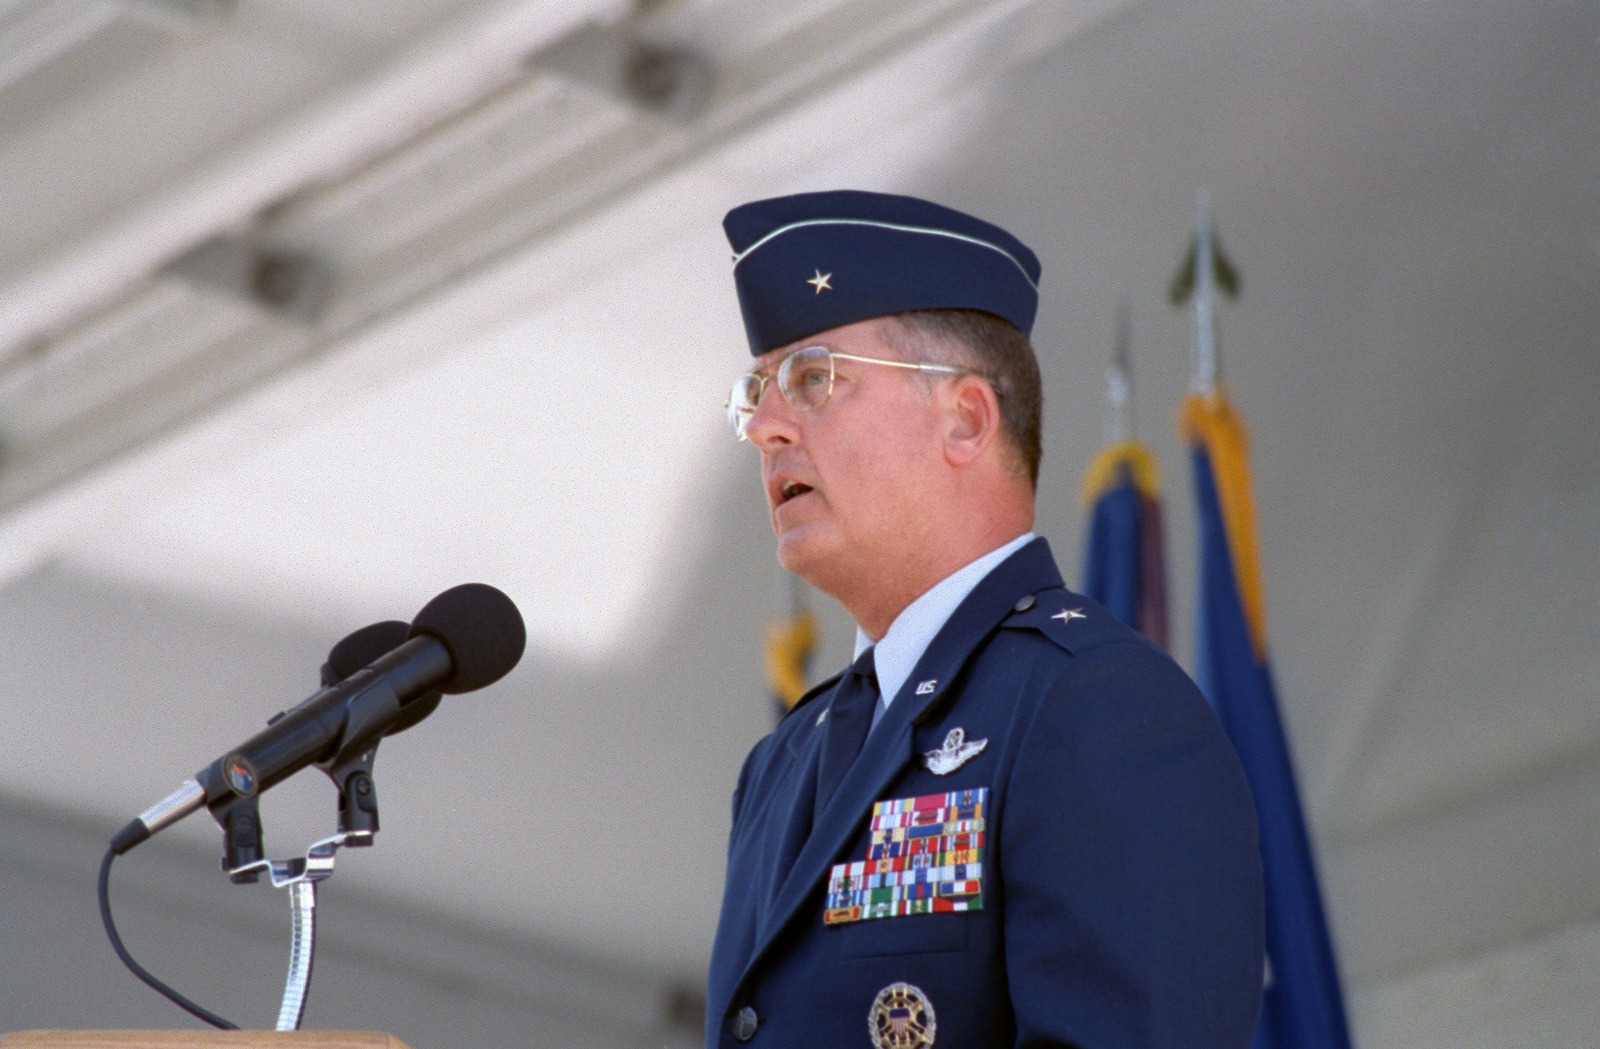 Brigadier General (BGEN) Robert Murdock, USAF, San Antonio - Air Logistics Center (SA-ALC) Commander, addresses former Kelly AFB employees and guests during Kelly AFB closing ceremony. Although the closing ceremony is in history books, government officials still actually own Kelly property and will until federal and state environmental regulators okay remedies for the installation's 30 sites that need environmental clean-up, according to federal law provisions